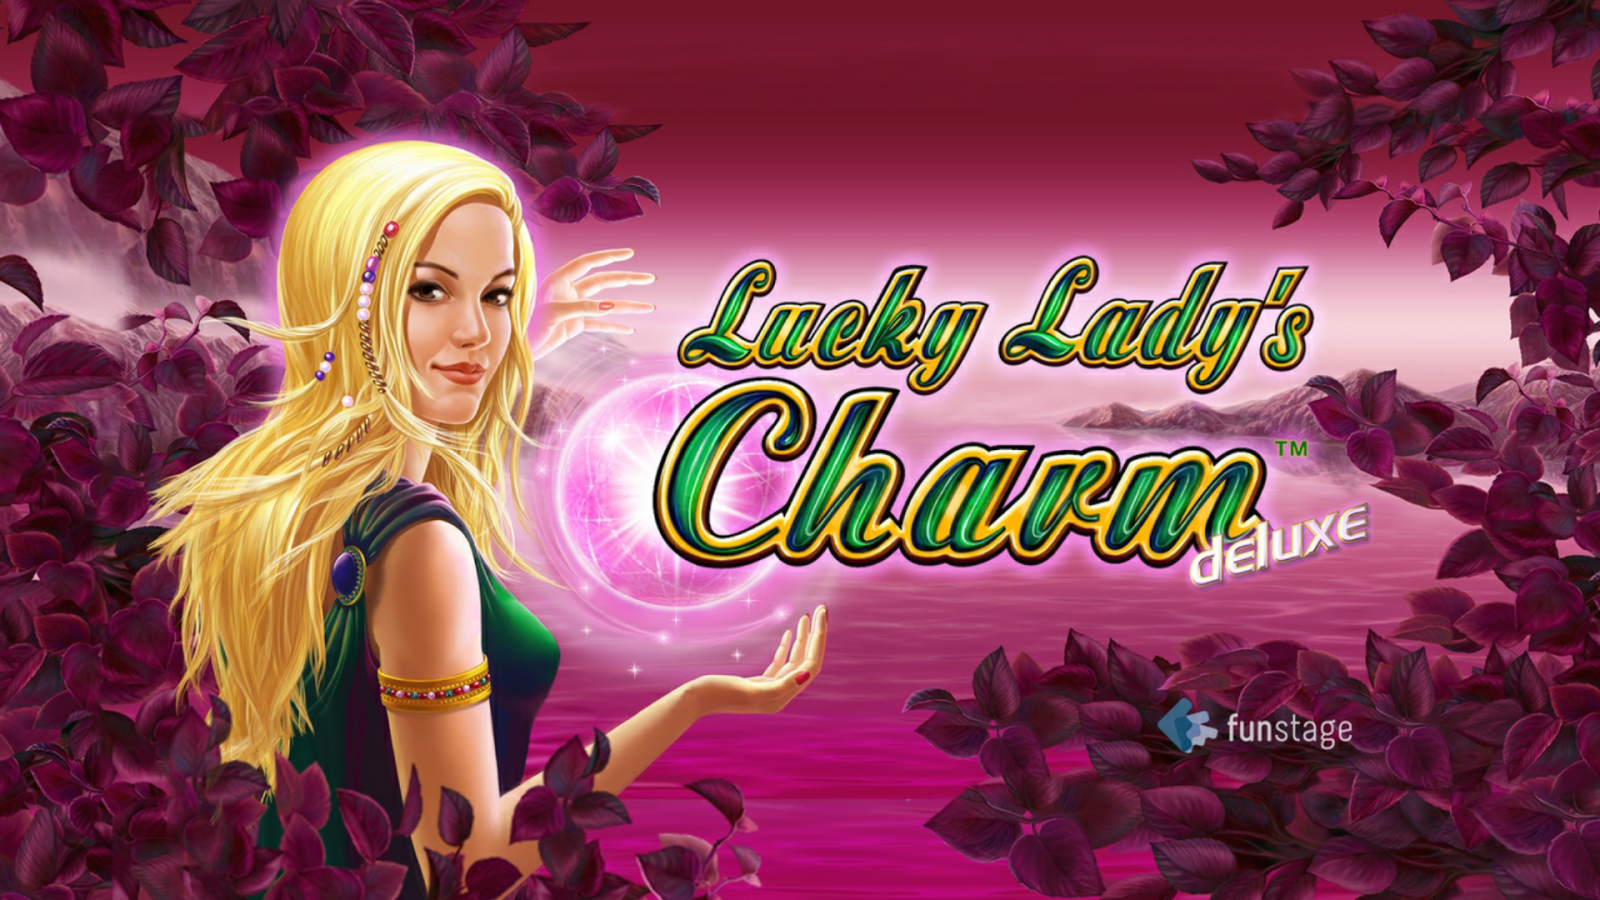 online casino for fun lucky lady charm slot